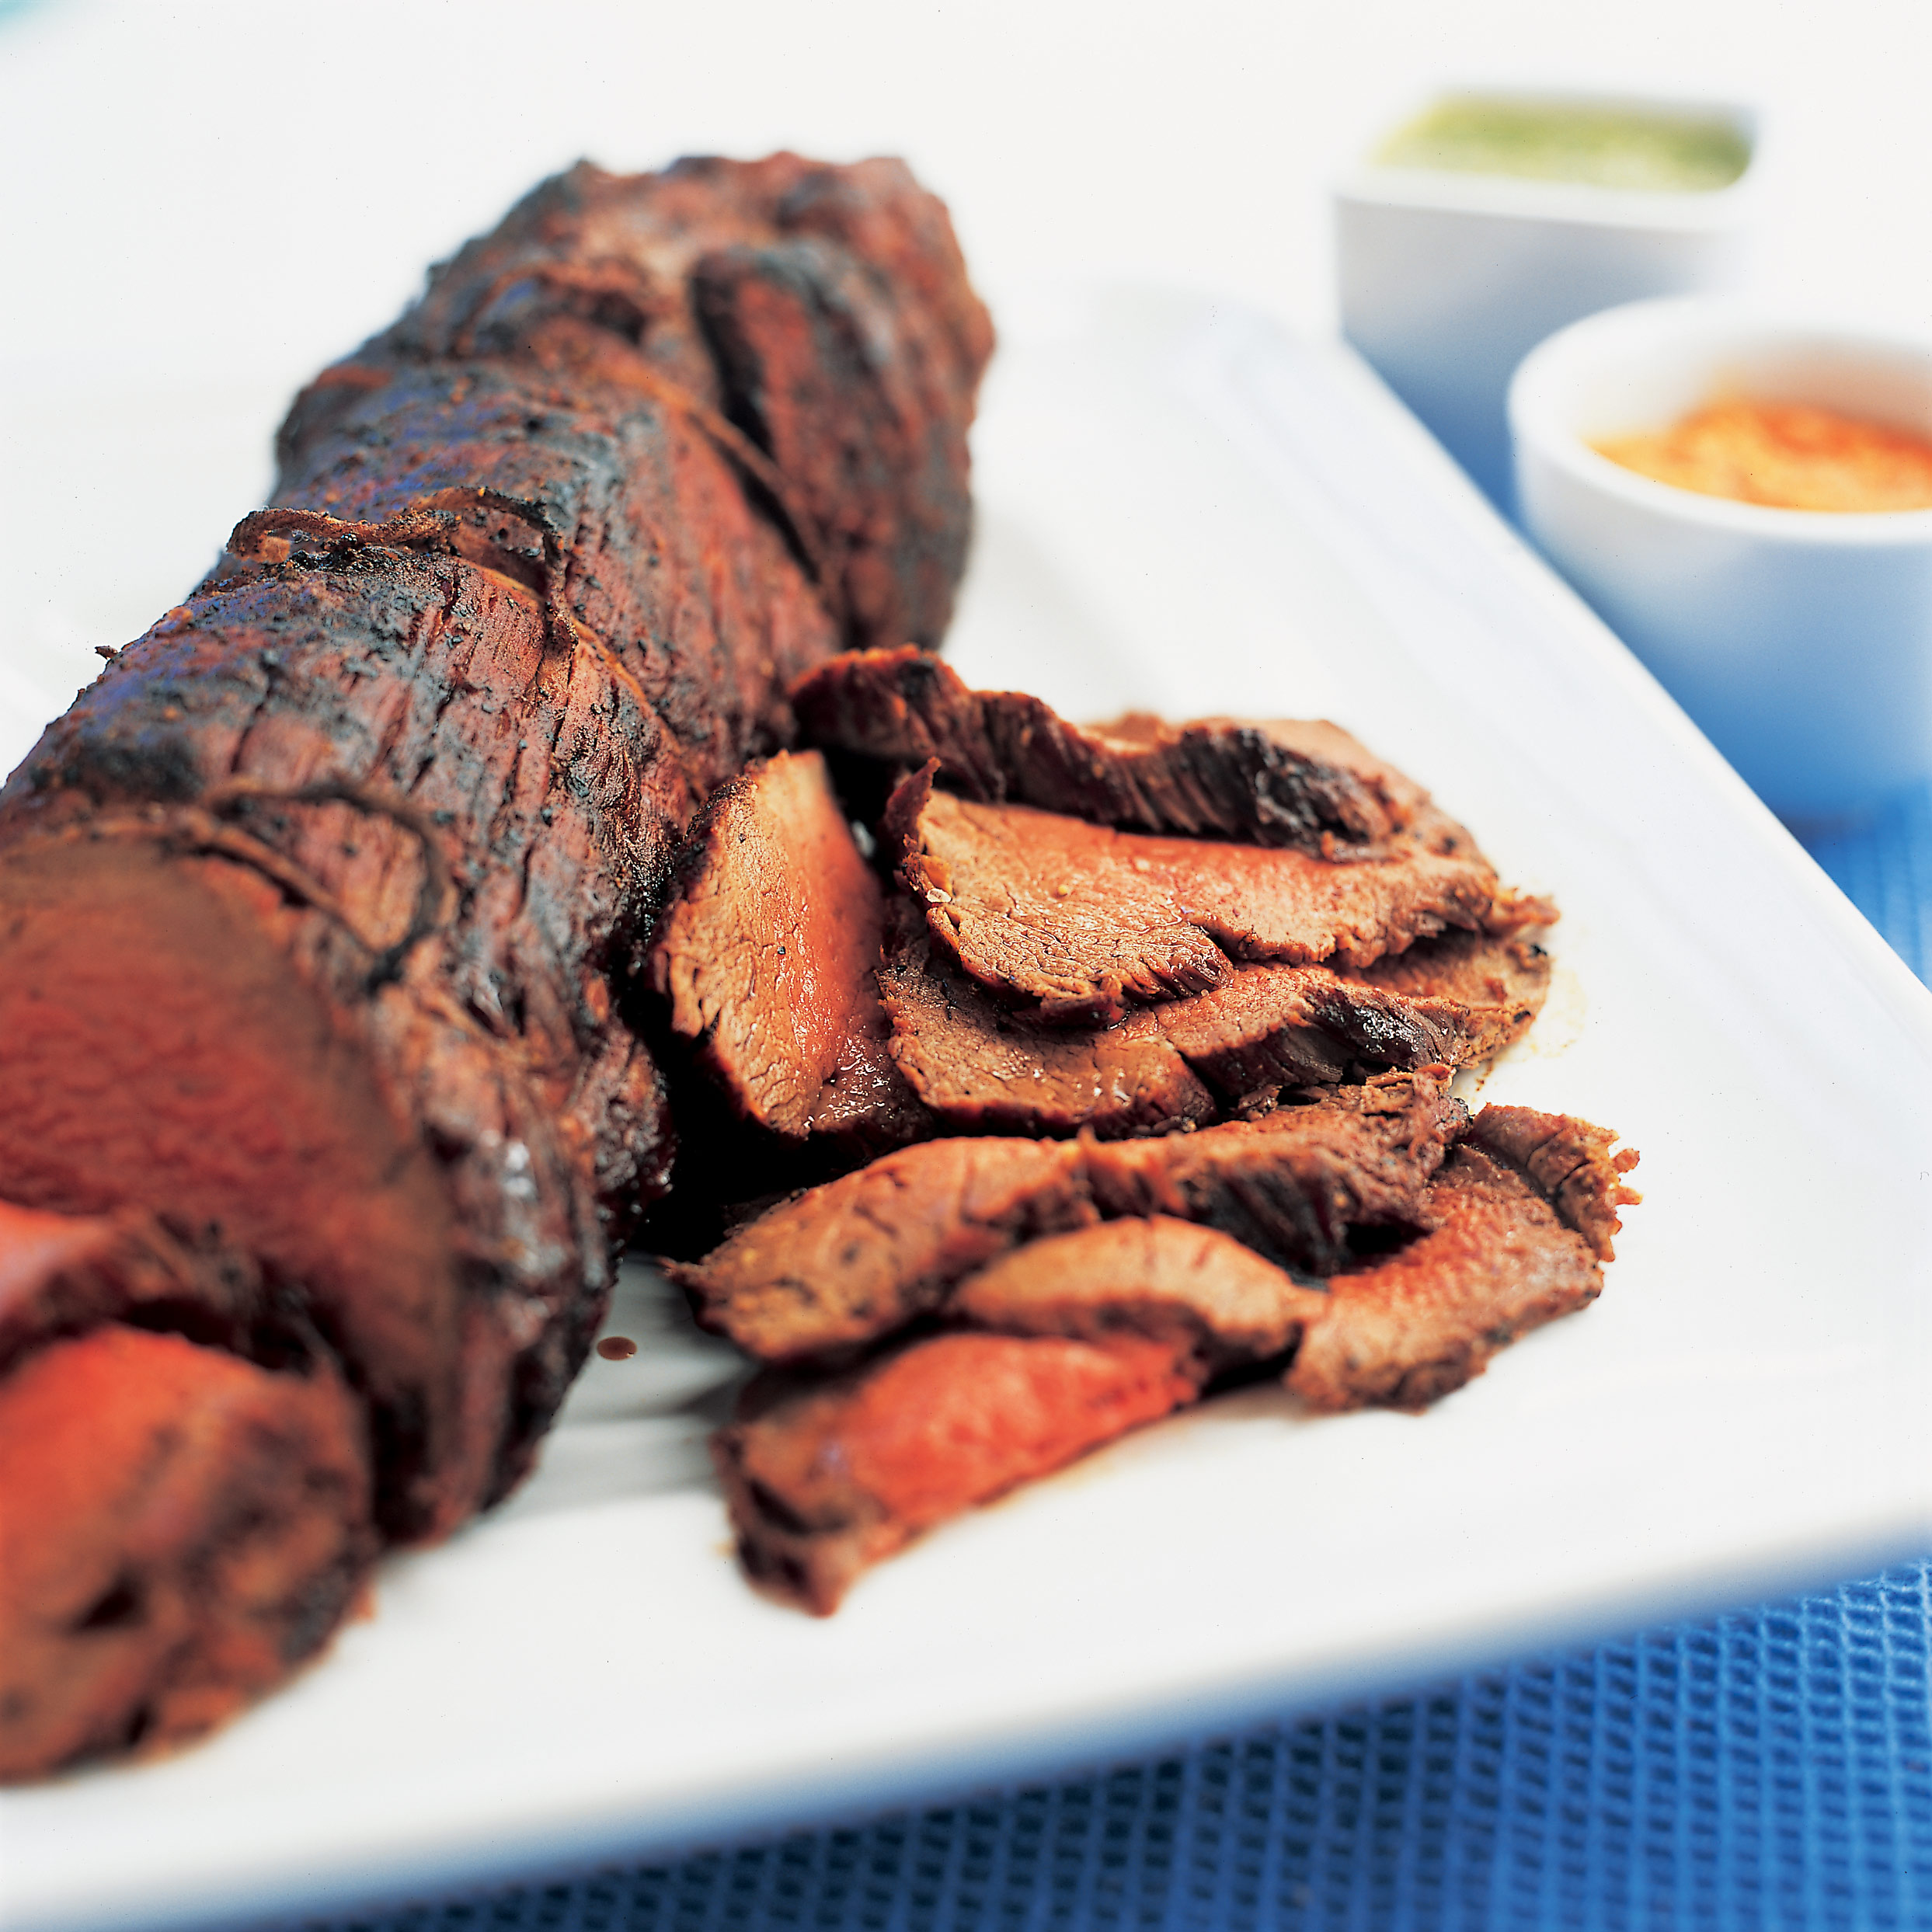 Grill-Roasted Beef Tenderloin Recipe - Cook's Illustrated